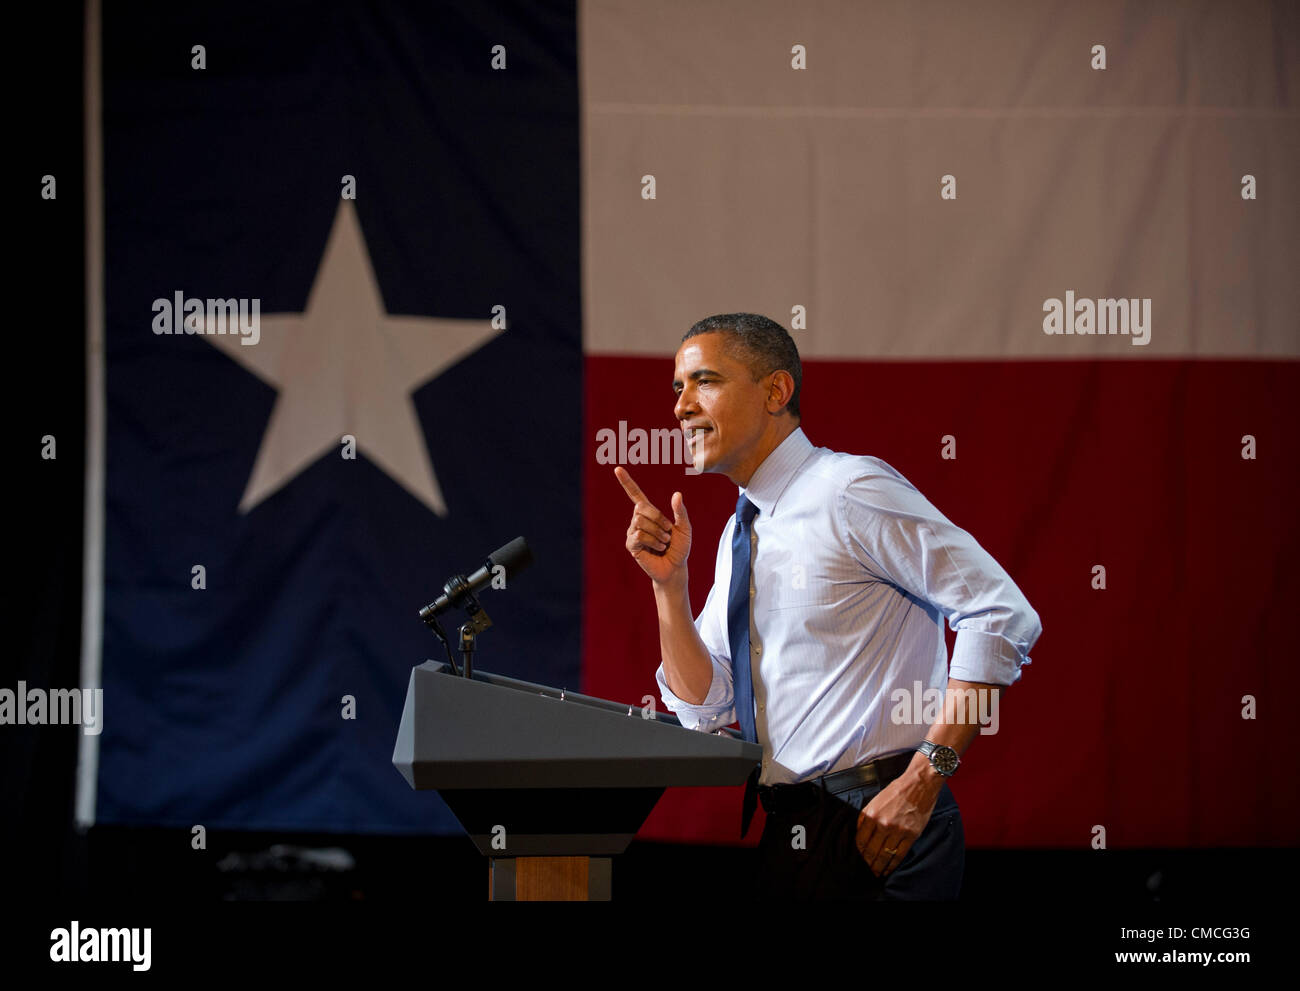 U.S. President Barack Obama makes a Texas campaign stop Tuesday night at the Austin Music Hall during the 2012 campaign - Stock Image